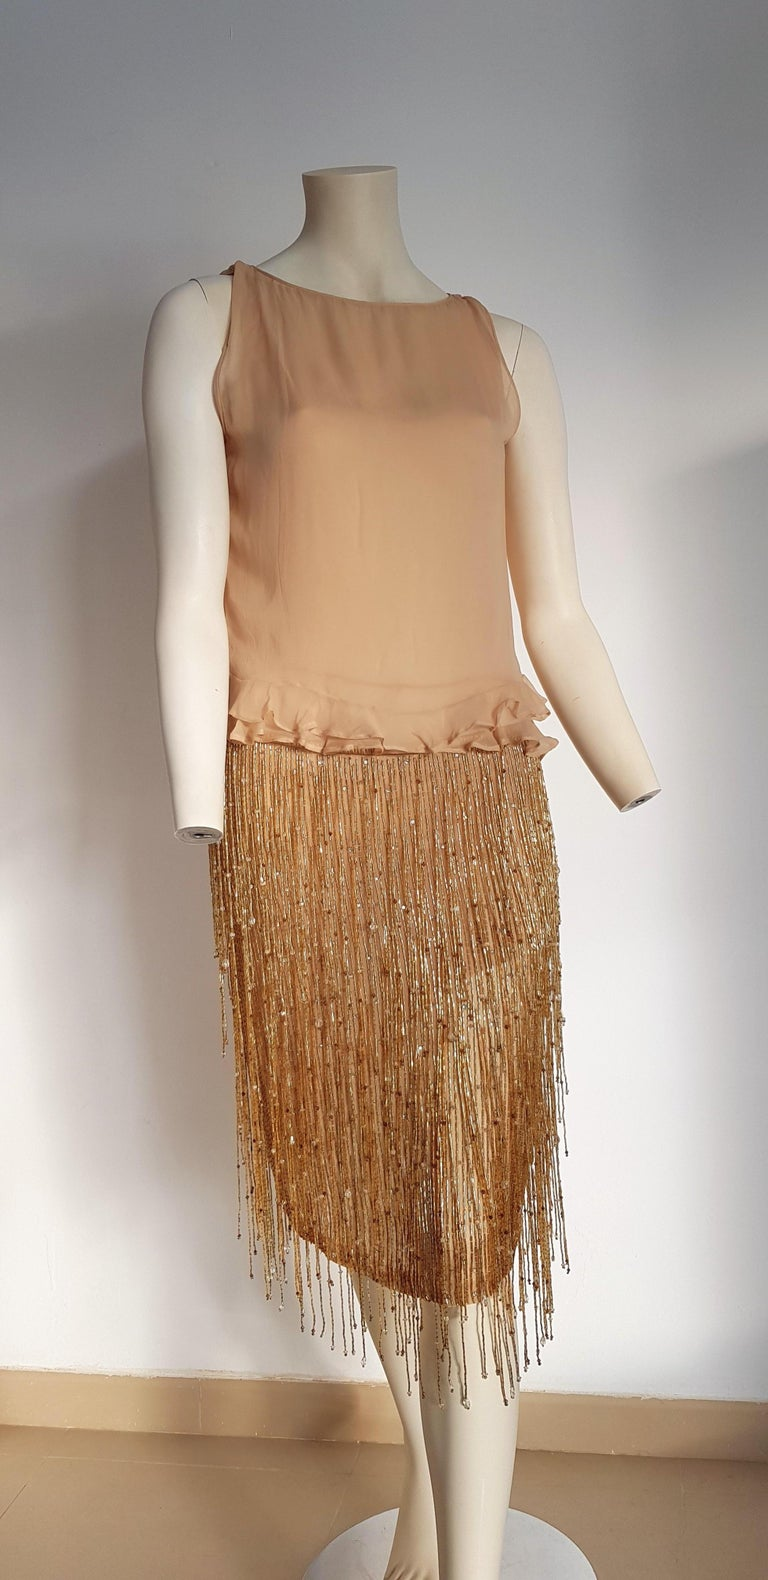 GUCCI Haute Couture Swarovski Diamonds Beaded Silk Top Skirt  - Unworn, New with tags.  SIZE: equivalent to about S/M, please review approx measurements as follows in cm.  TOP: lenght 50, chest underarm to underarm 45, bust circumference 86,